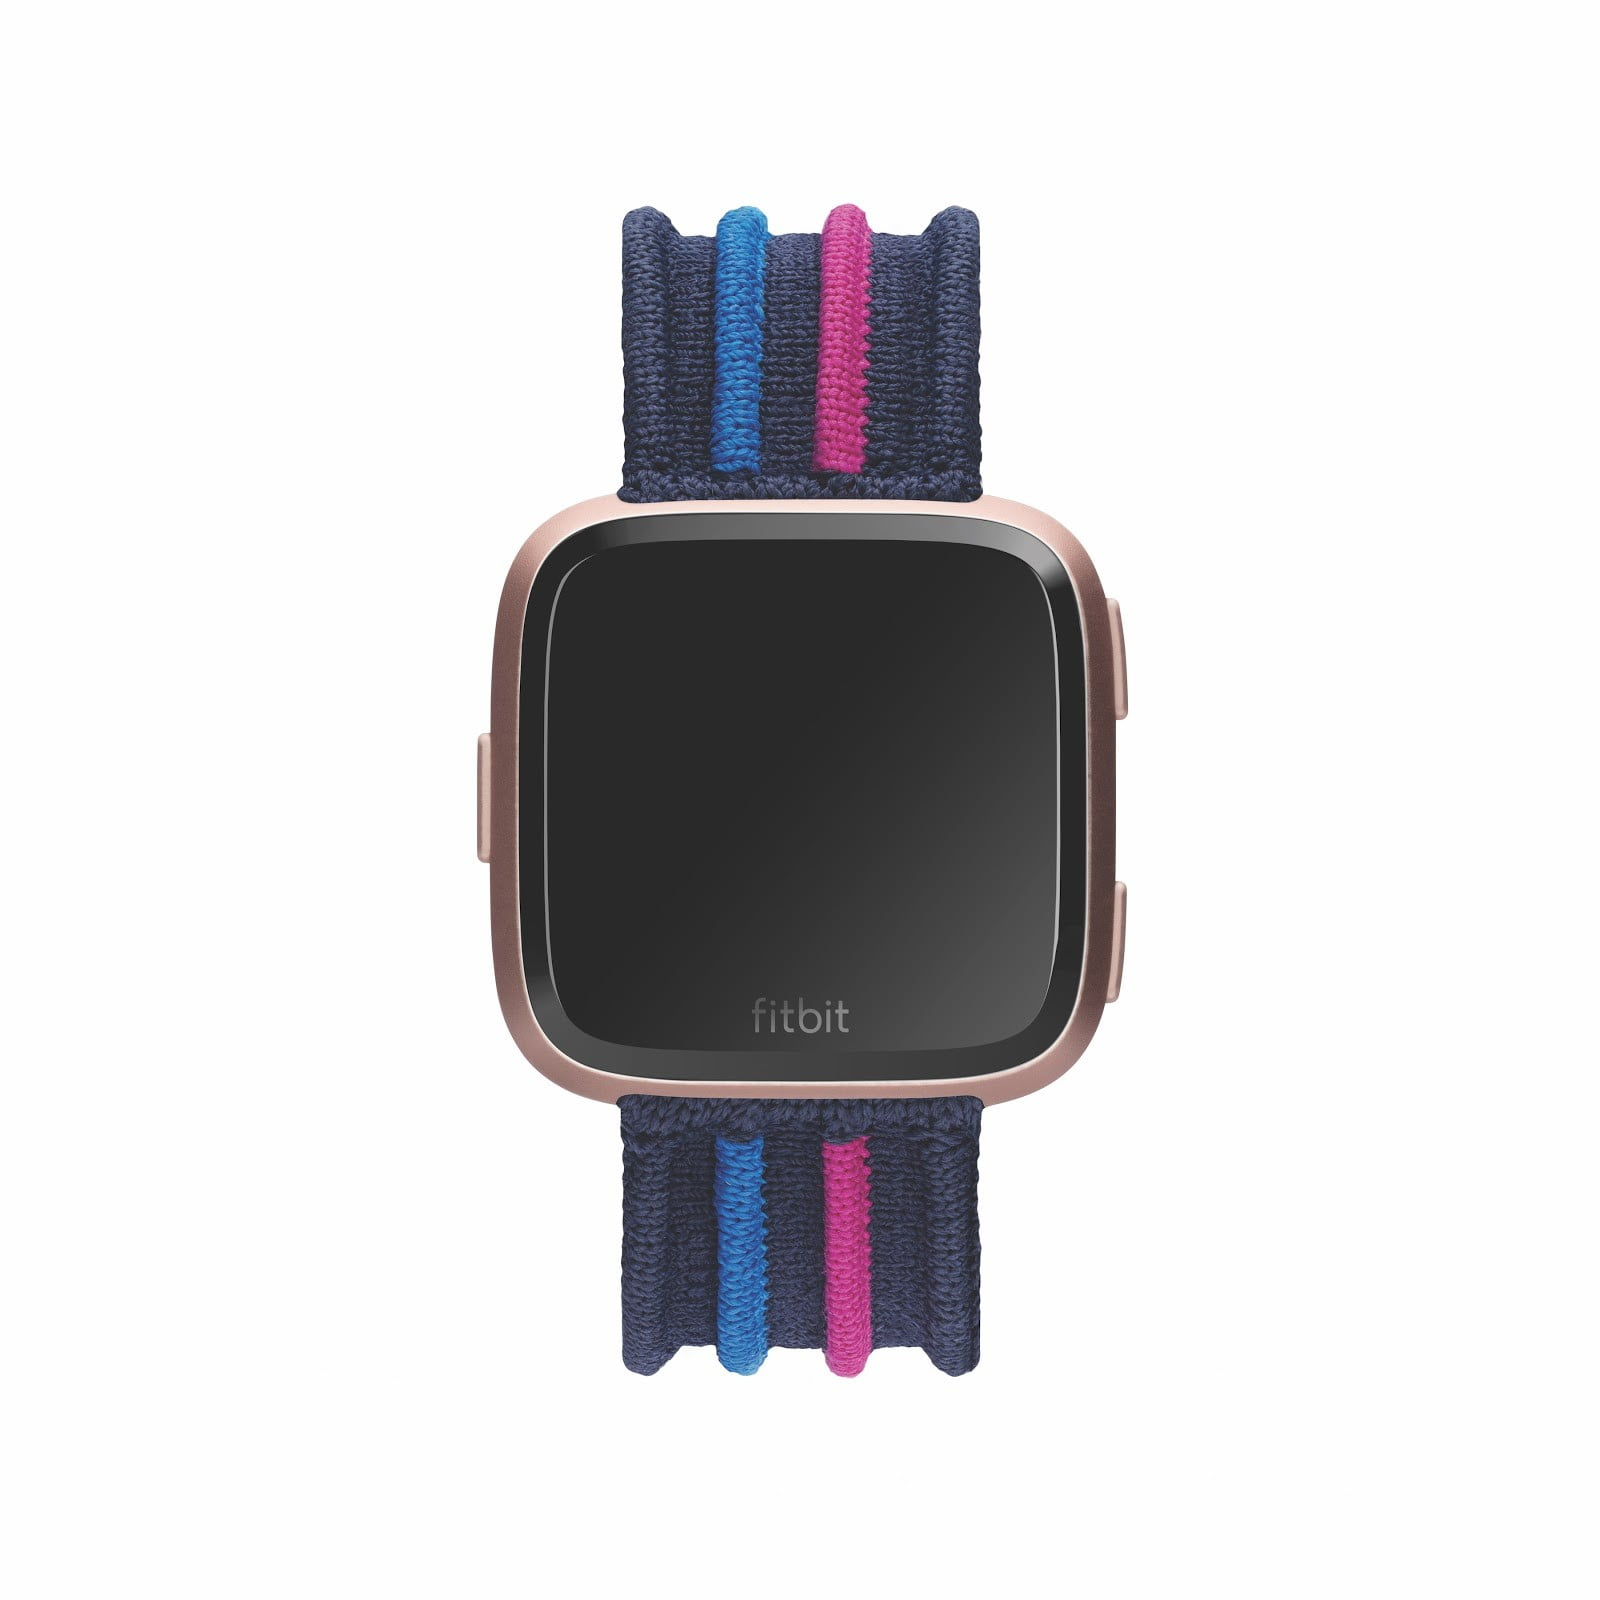 The Fitbit Versa Smartwatch: Everything You Need to Know